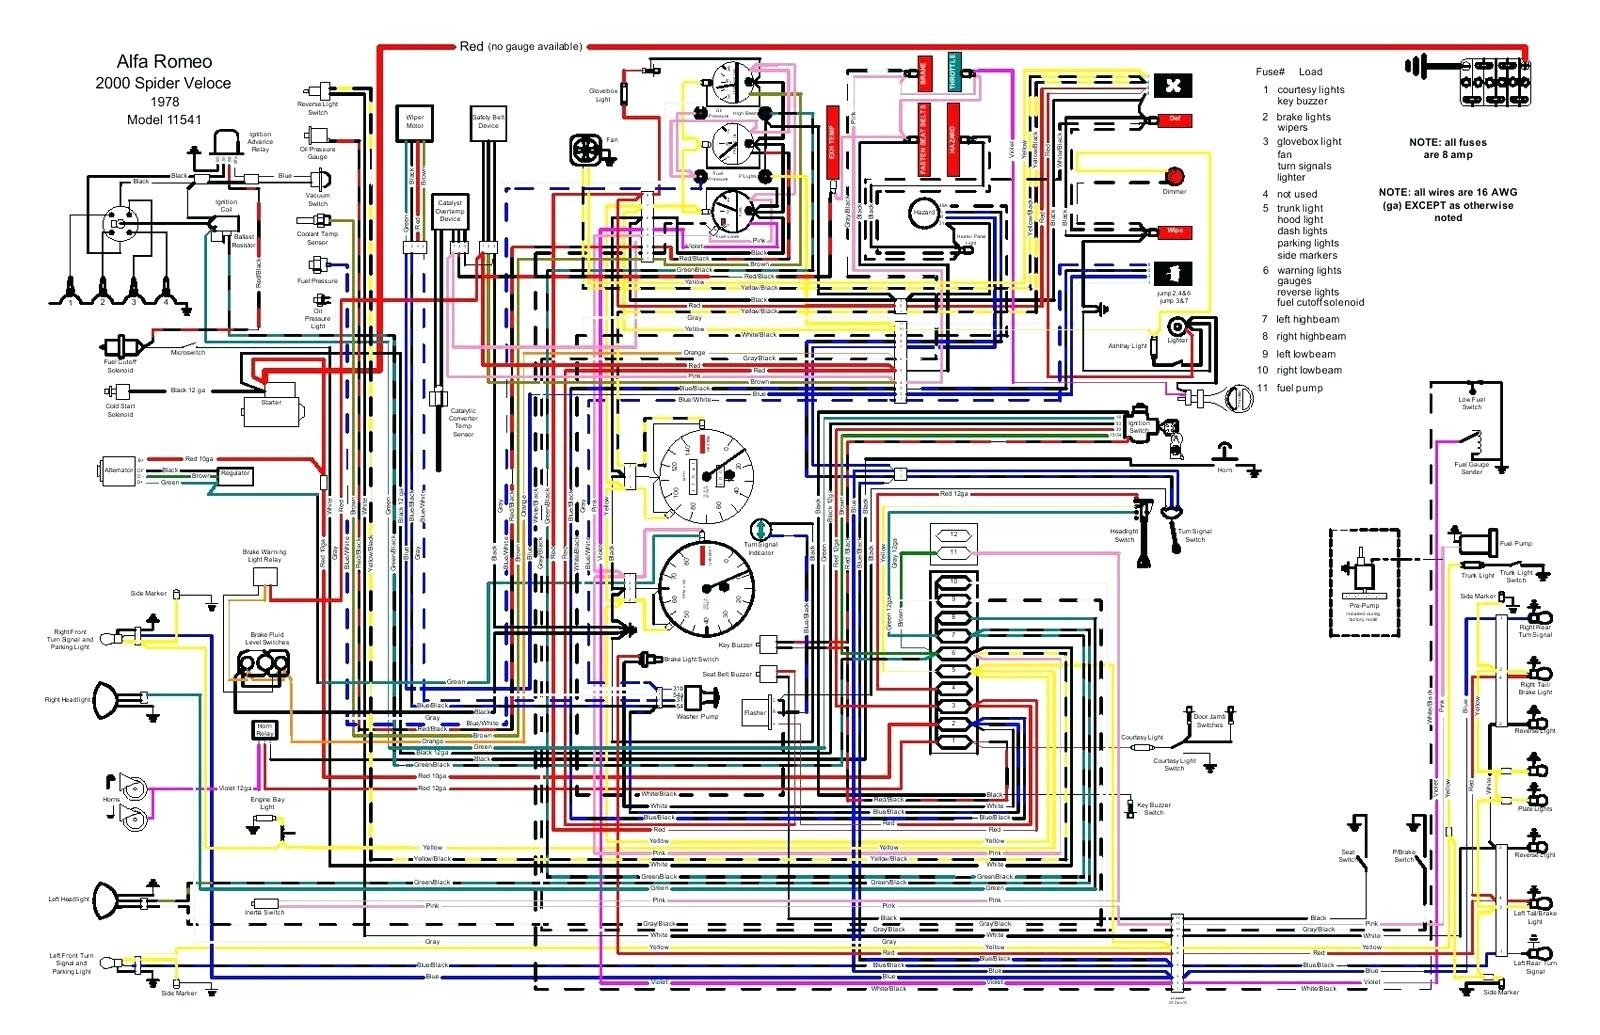 Panel Wiring Diagram Software | Wiring Diagram - Free Wiring Diagram Software